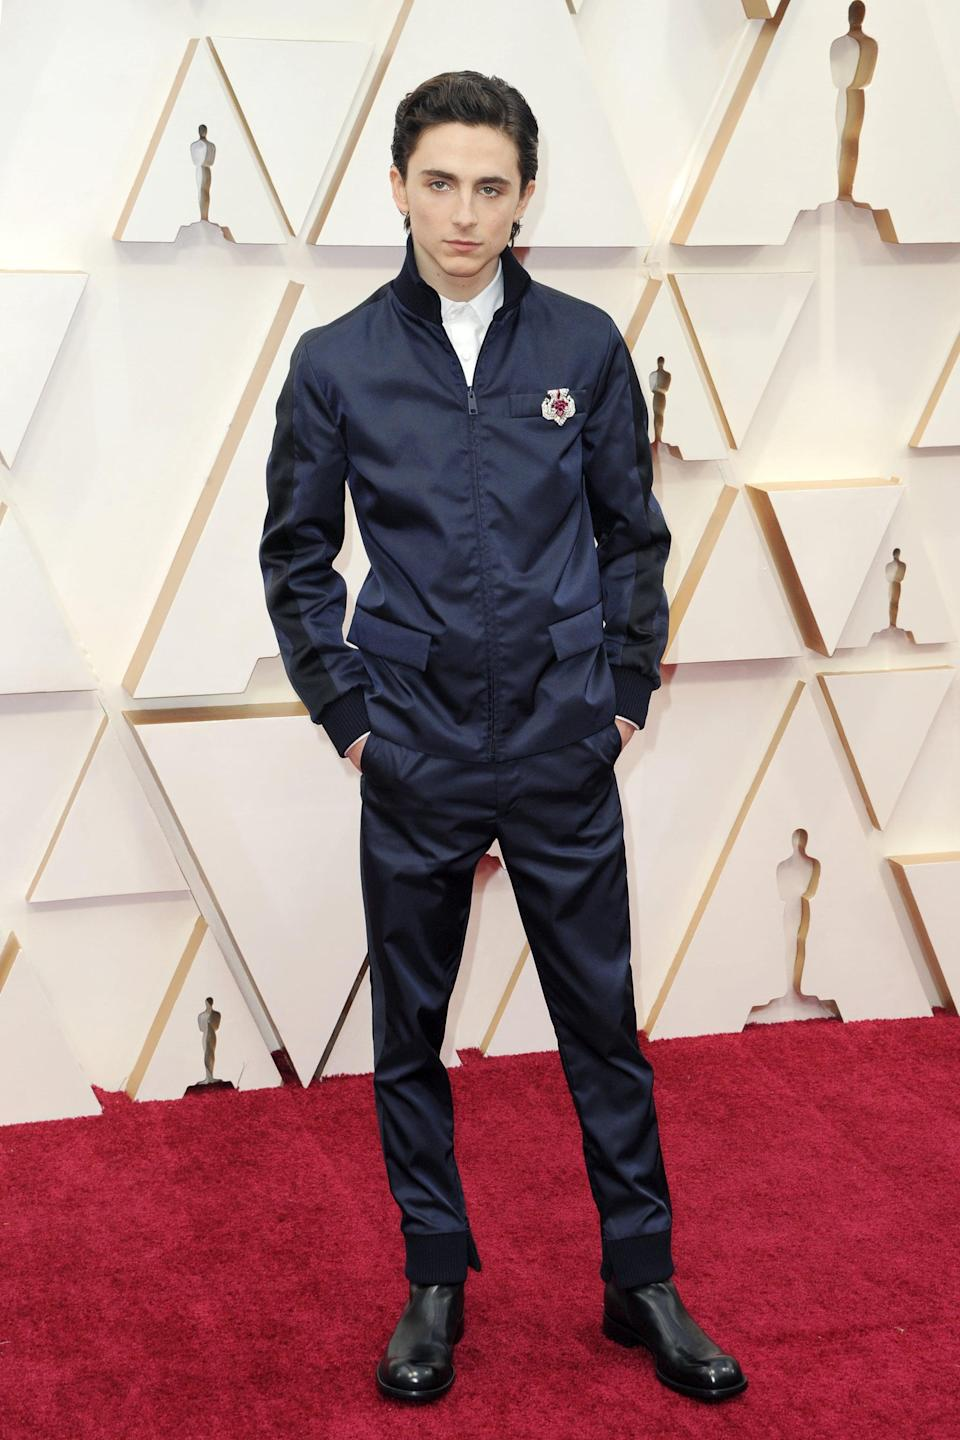 "<p>American actor and Academy Award nominee <a href=""https://www.popsugar.com/fashion/timothee-chalamet-style-46883423"" class=""link rapid-noclick-resp"" rel=""nofollow noopener"" target=""_blank"" data-ylk=""slk:Timothée Chalamet"">Timothée Chalamet</a> will attend the Met Gala for the first time as cochair.</p>"